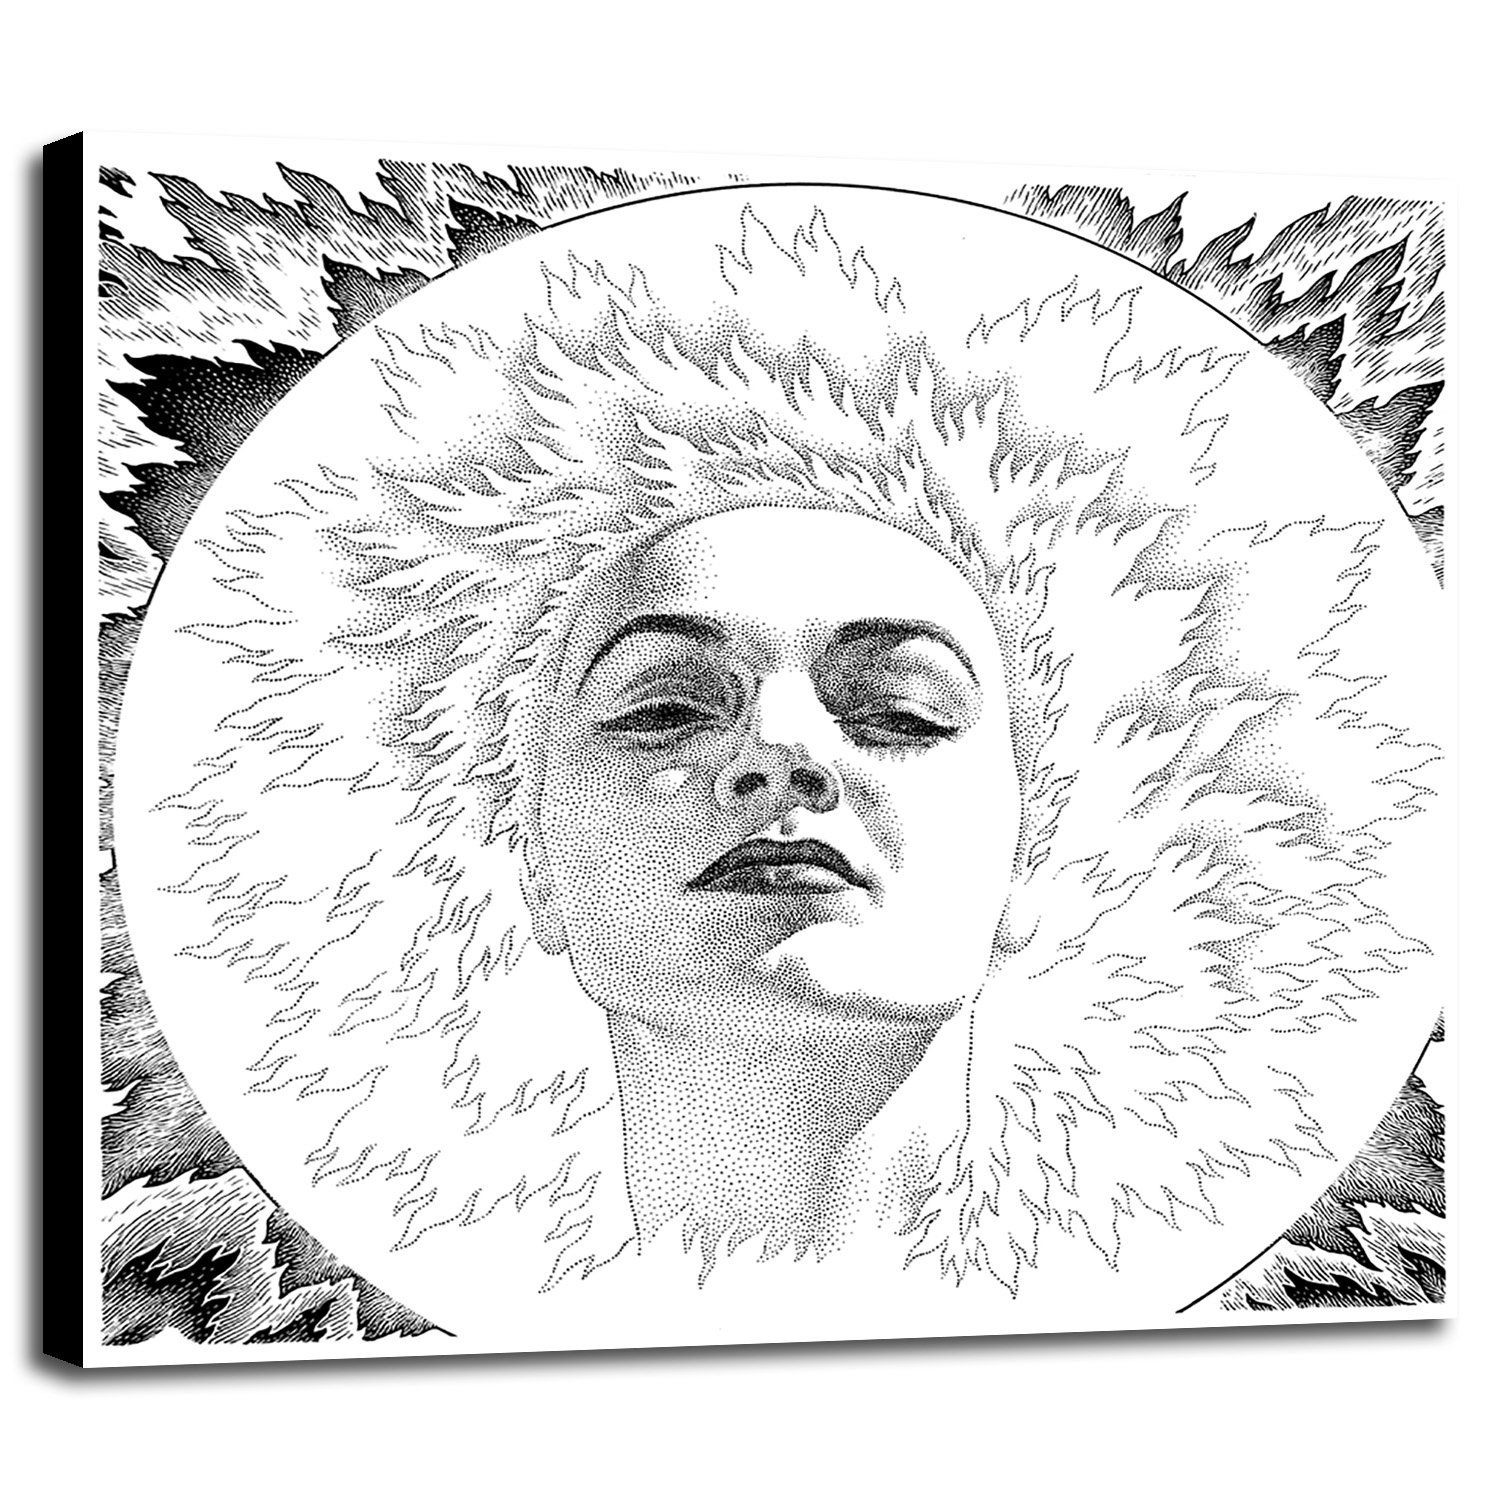 34.5x36 Frame USA Sunburst Girl Print 34.5x36 by Virgil Finlay in a Canvas Stretched on 1.5 Bars-VIRFIN272207 Bars Canvas Stretched on